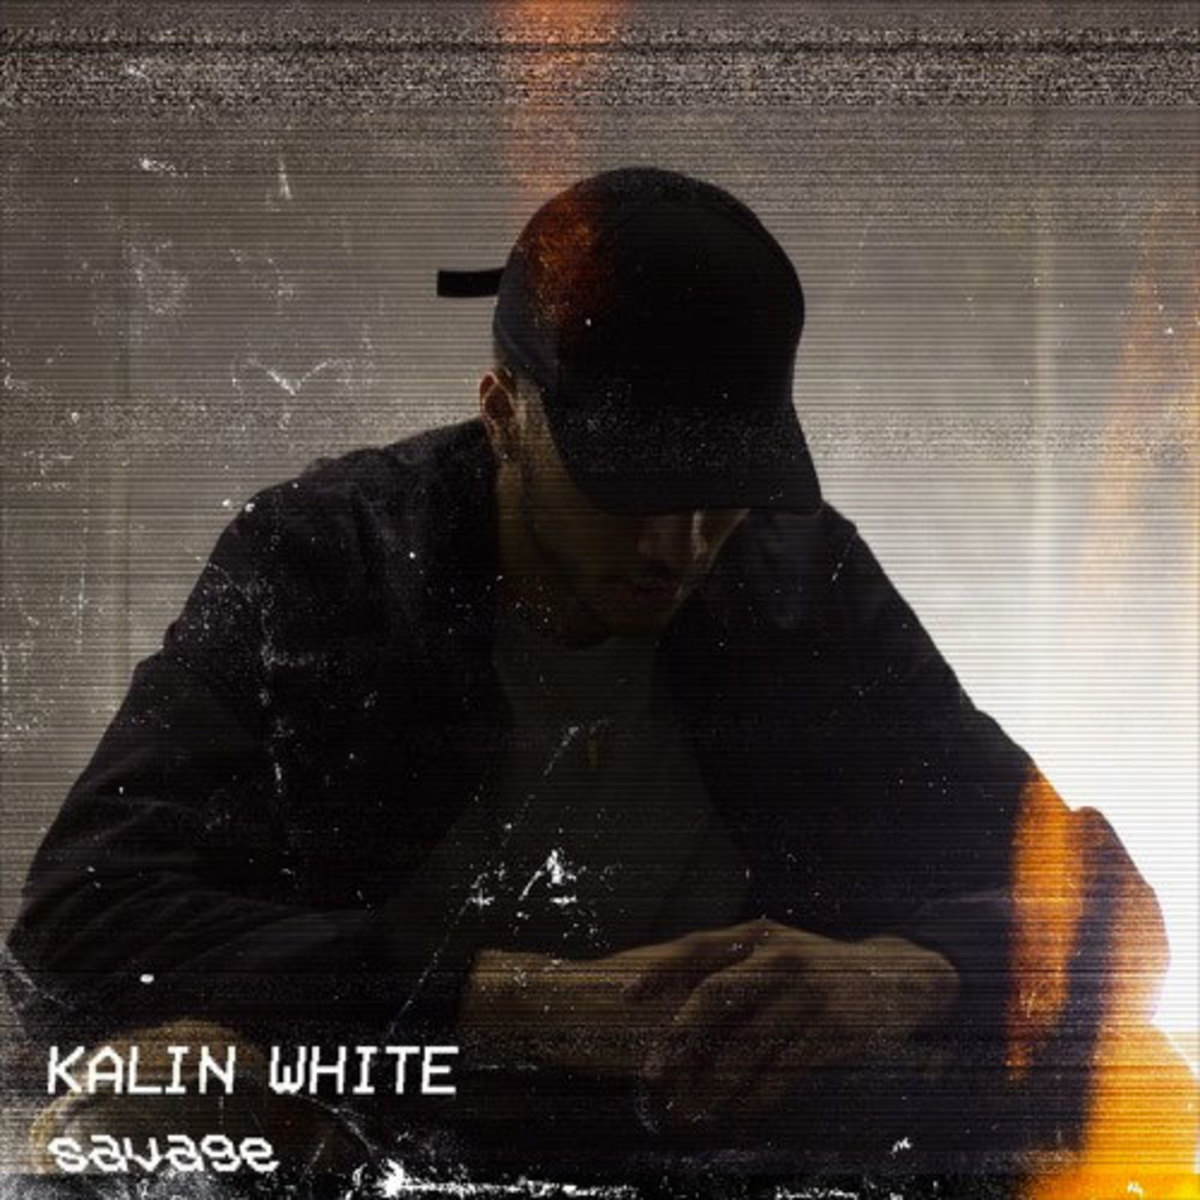 kalin-white-savage.jpg